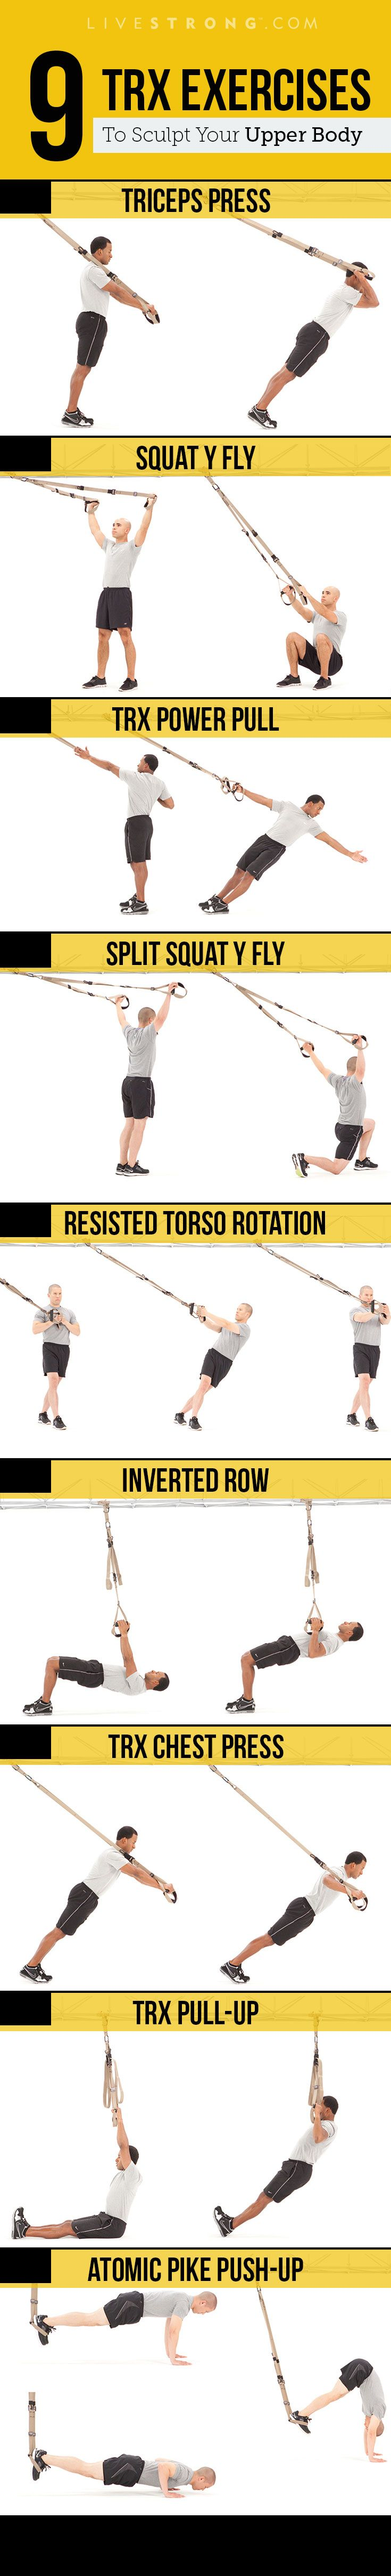 Get ripped with TRX - http://www.amazon.de/dp/B00RLH0M6C http://www.amazon.co.uk/dp/B00RLH0M6C